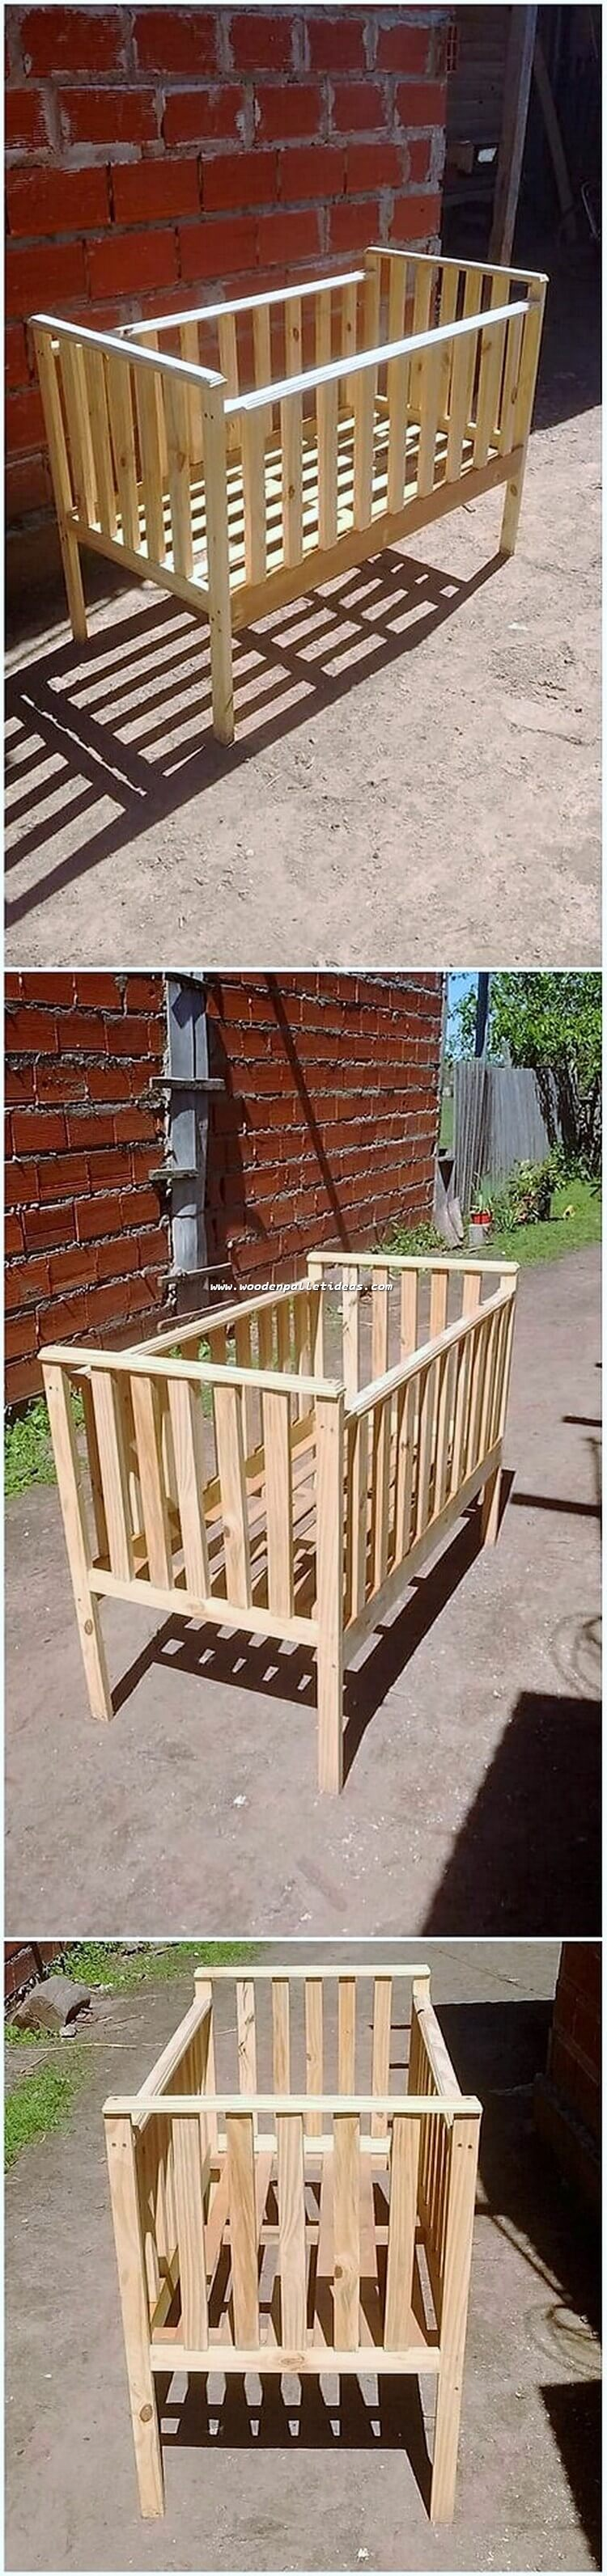 Pallet Bed for Babies